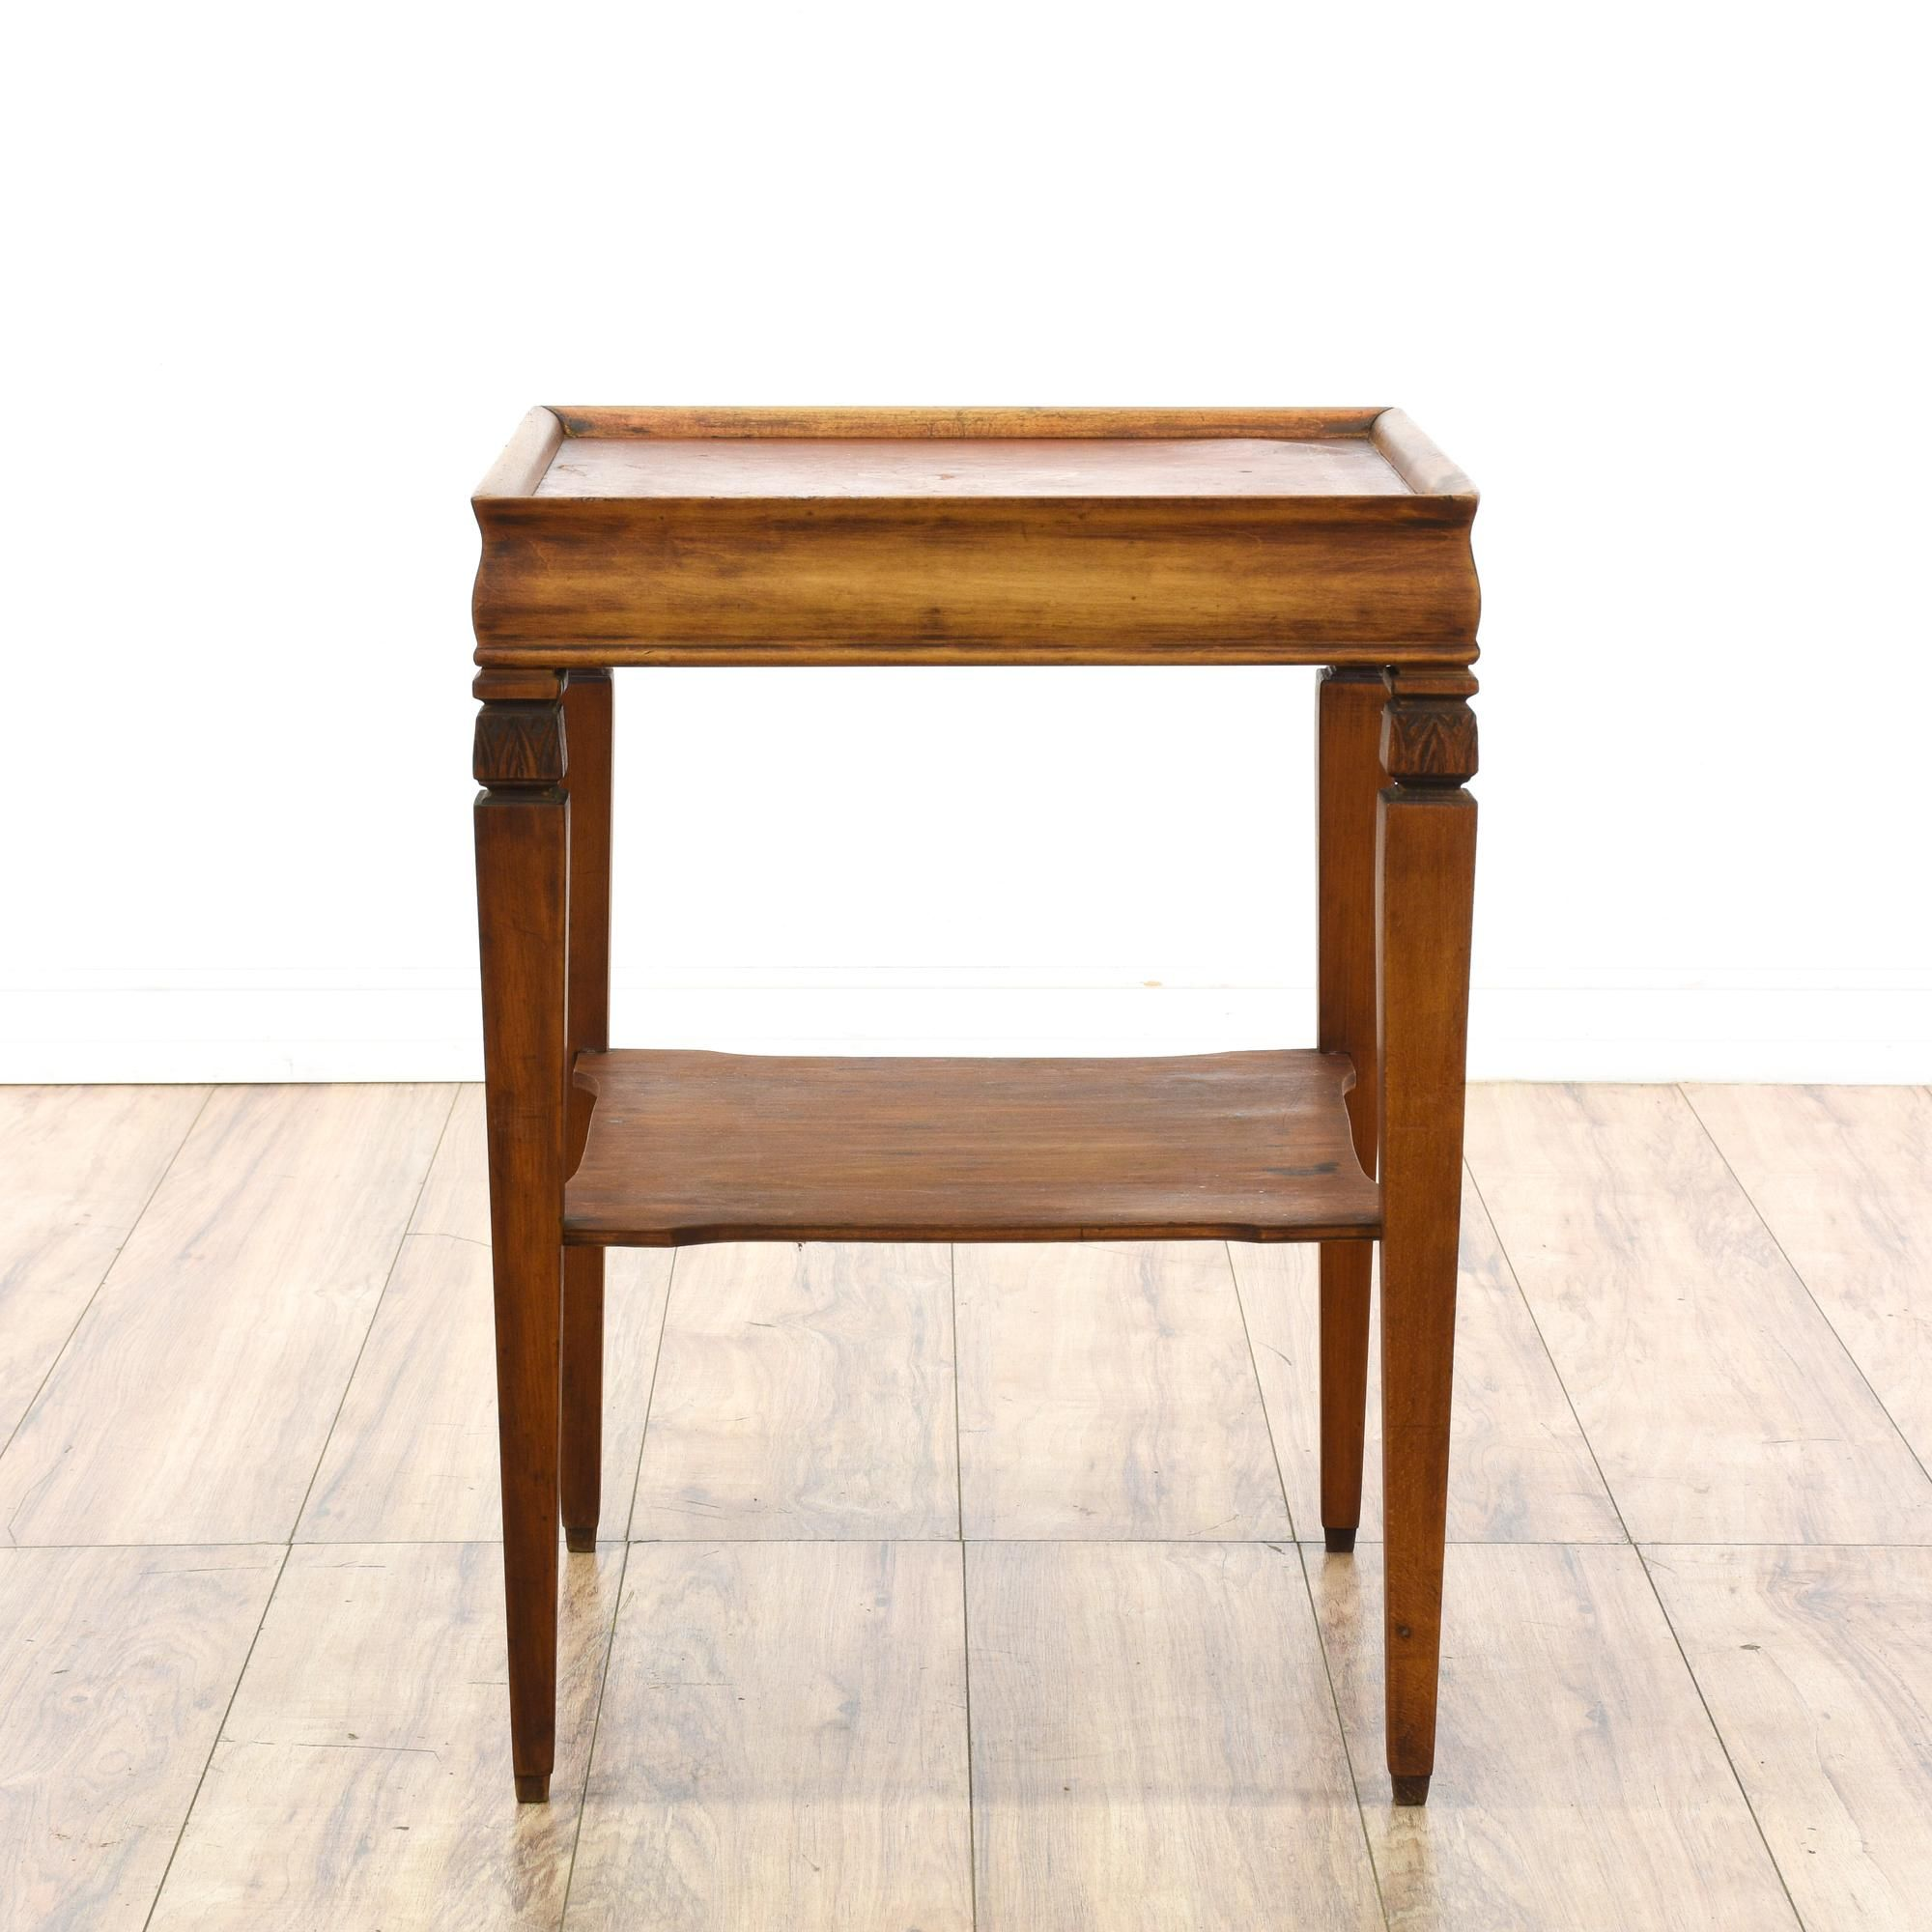 Furniture Legs San Diego traditional tiered end table | solid wood, furniture san diego and